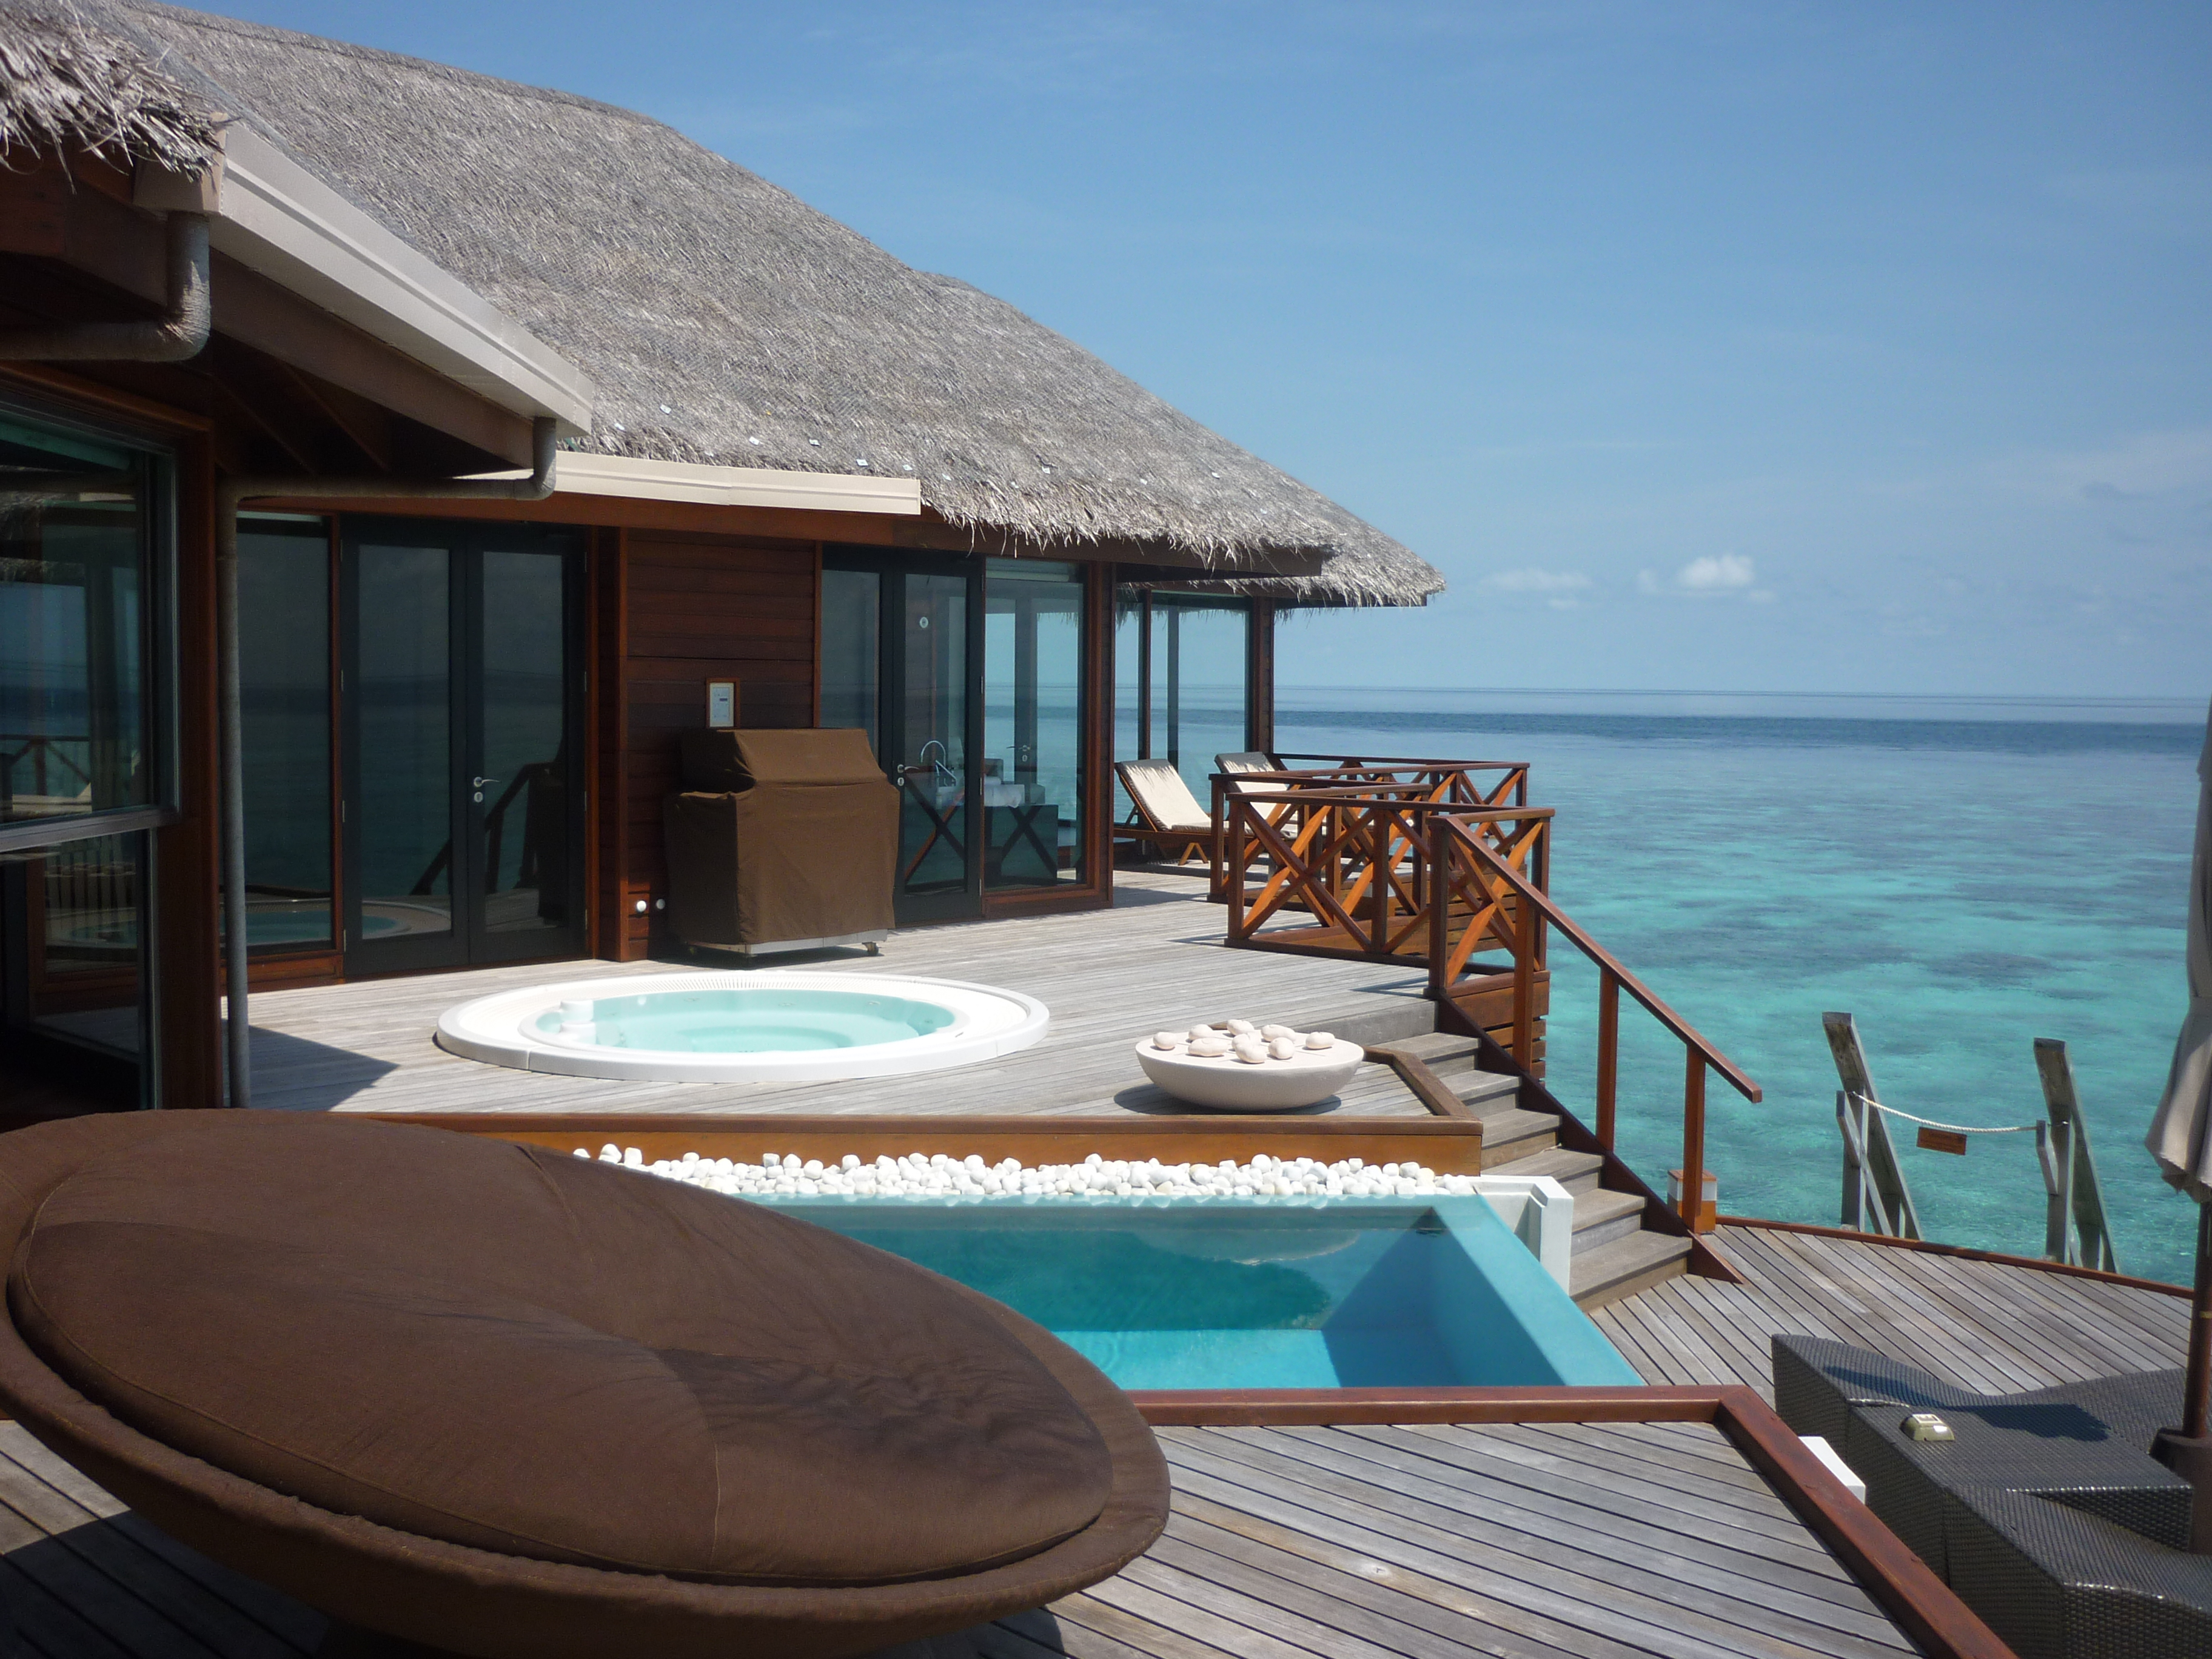 The Stunning View from the deck of the Ocean Pavilion at Huvafenfushi